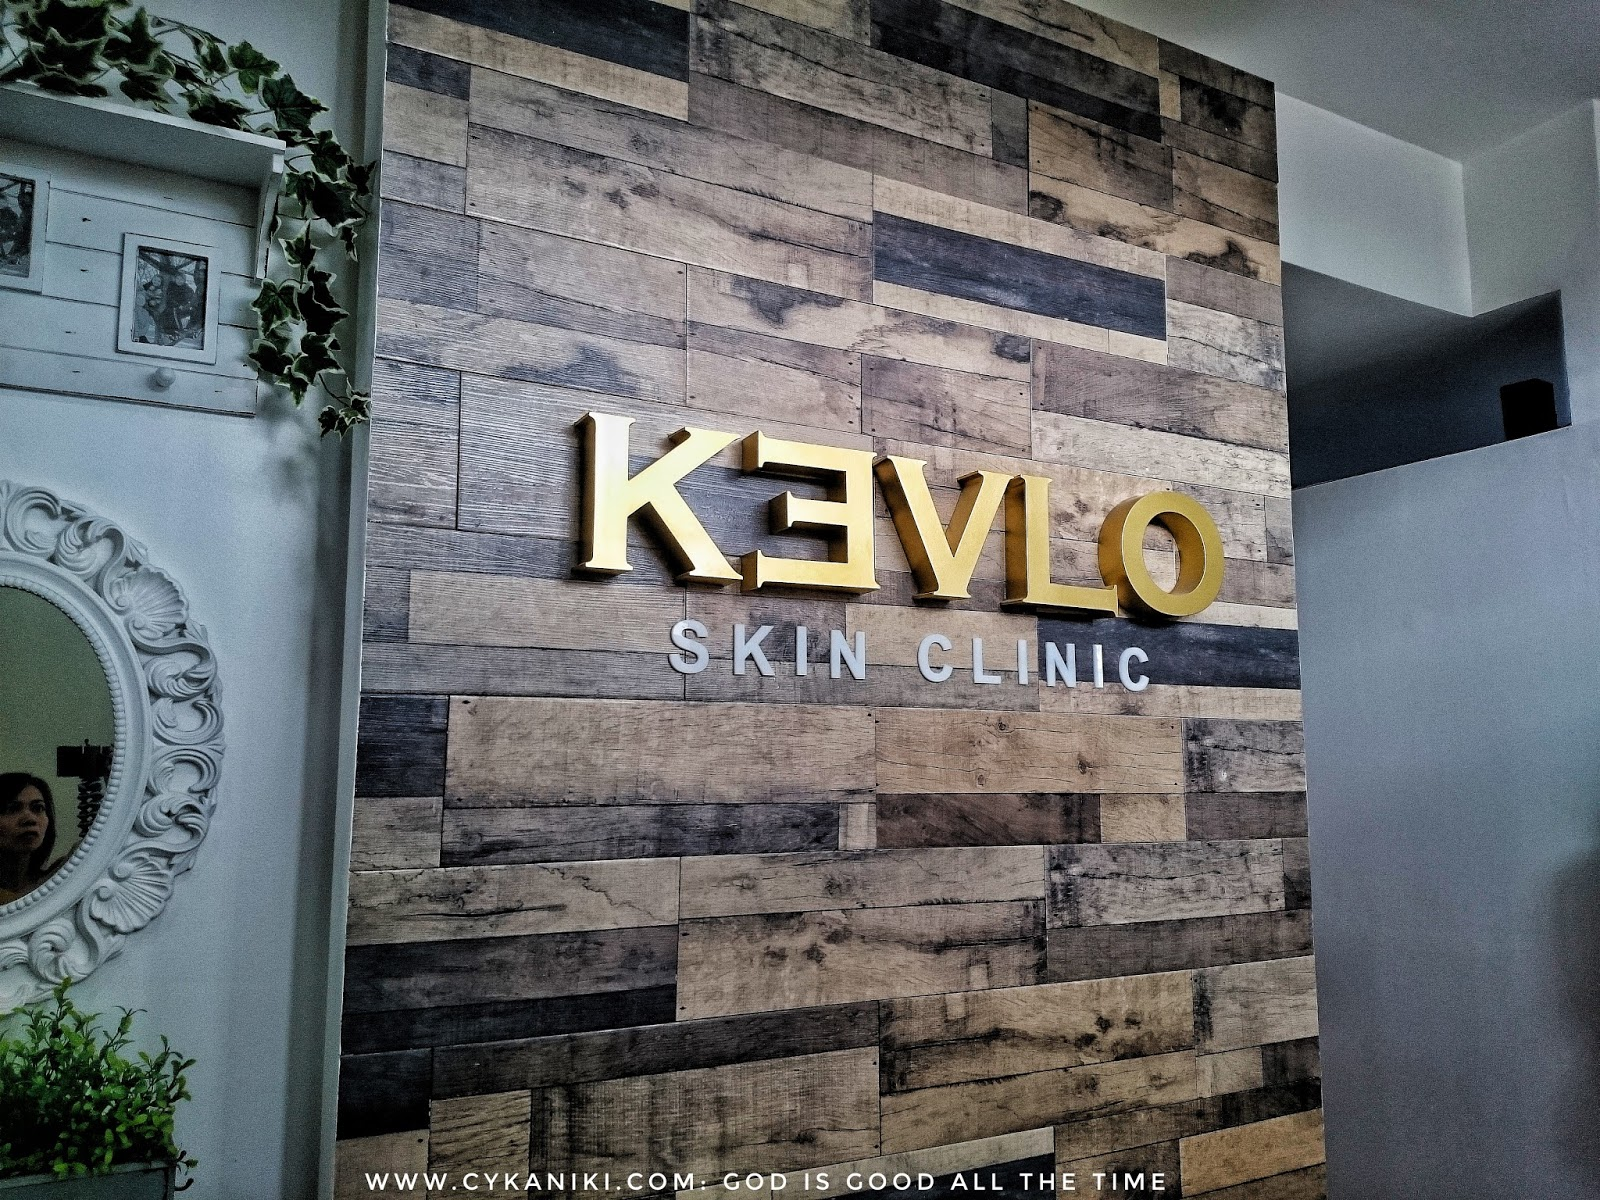 Facial treatment at KEVLO Skin Clinic - God is Good all the time